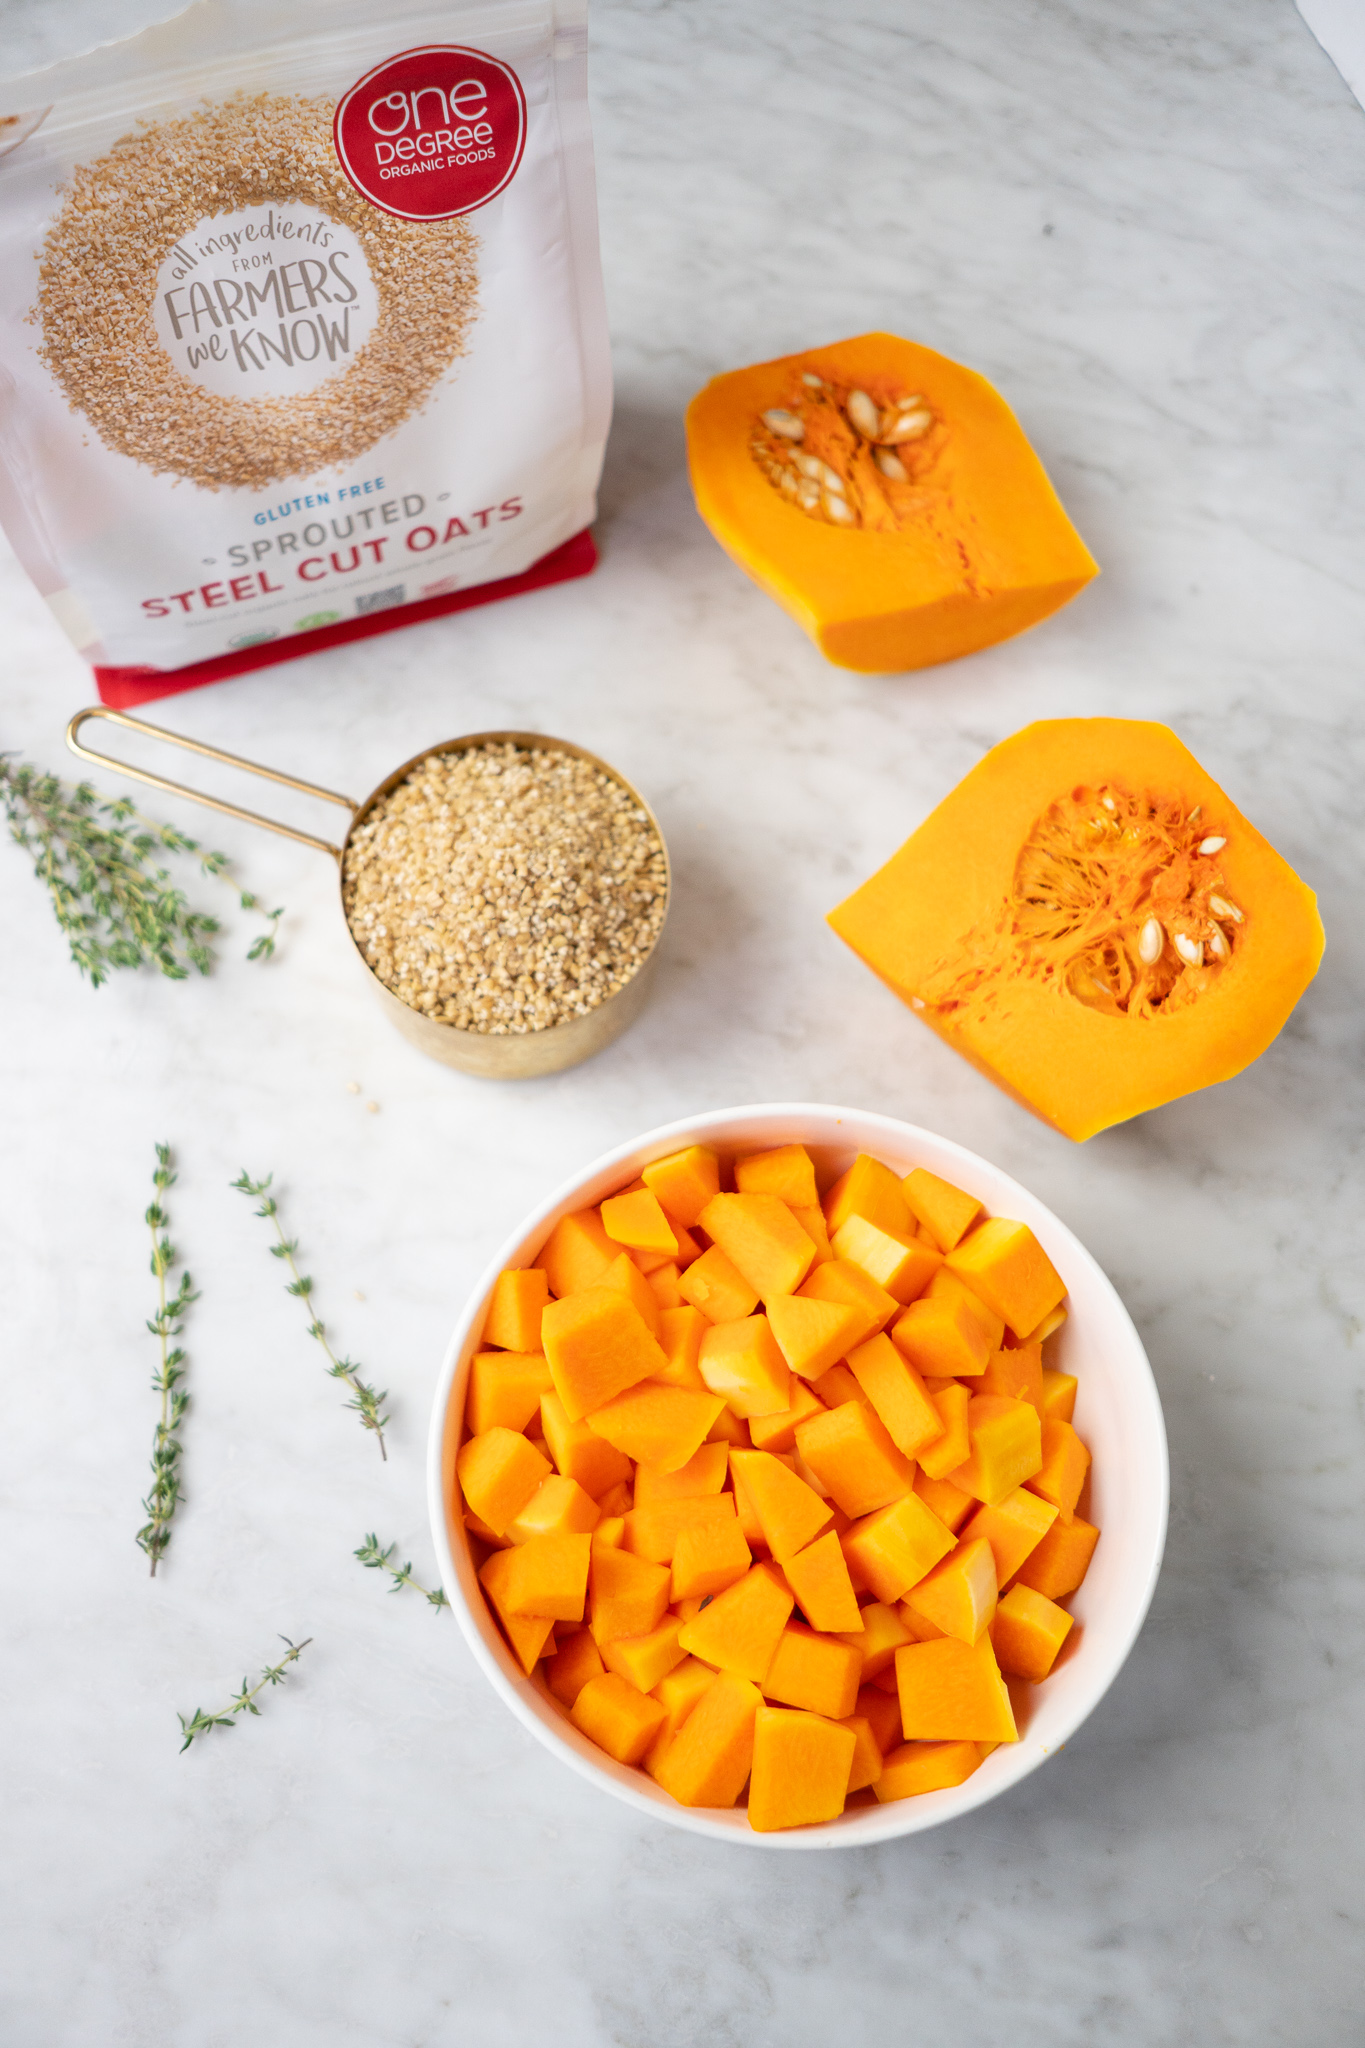 butternut squash and steel cut oats